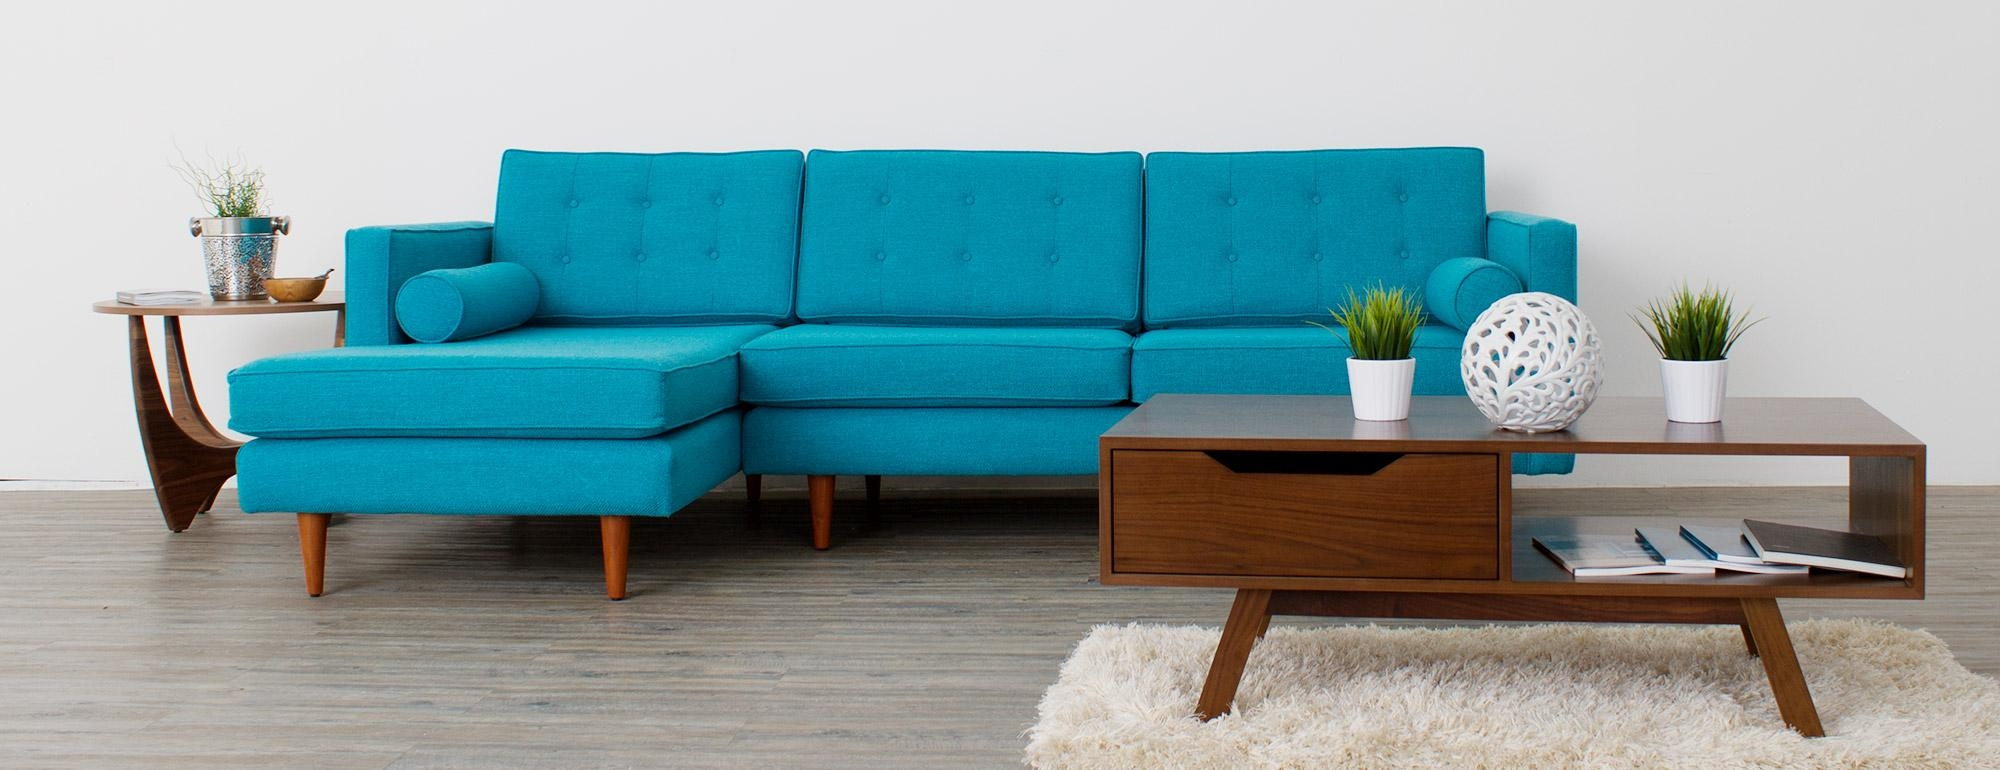 Braxton Sectional | Joybird Within Braxton Sofa (View 20 of 20)